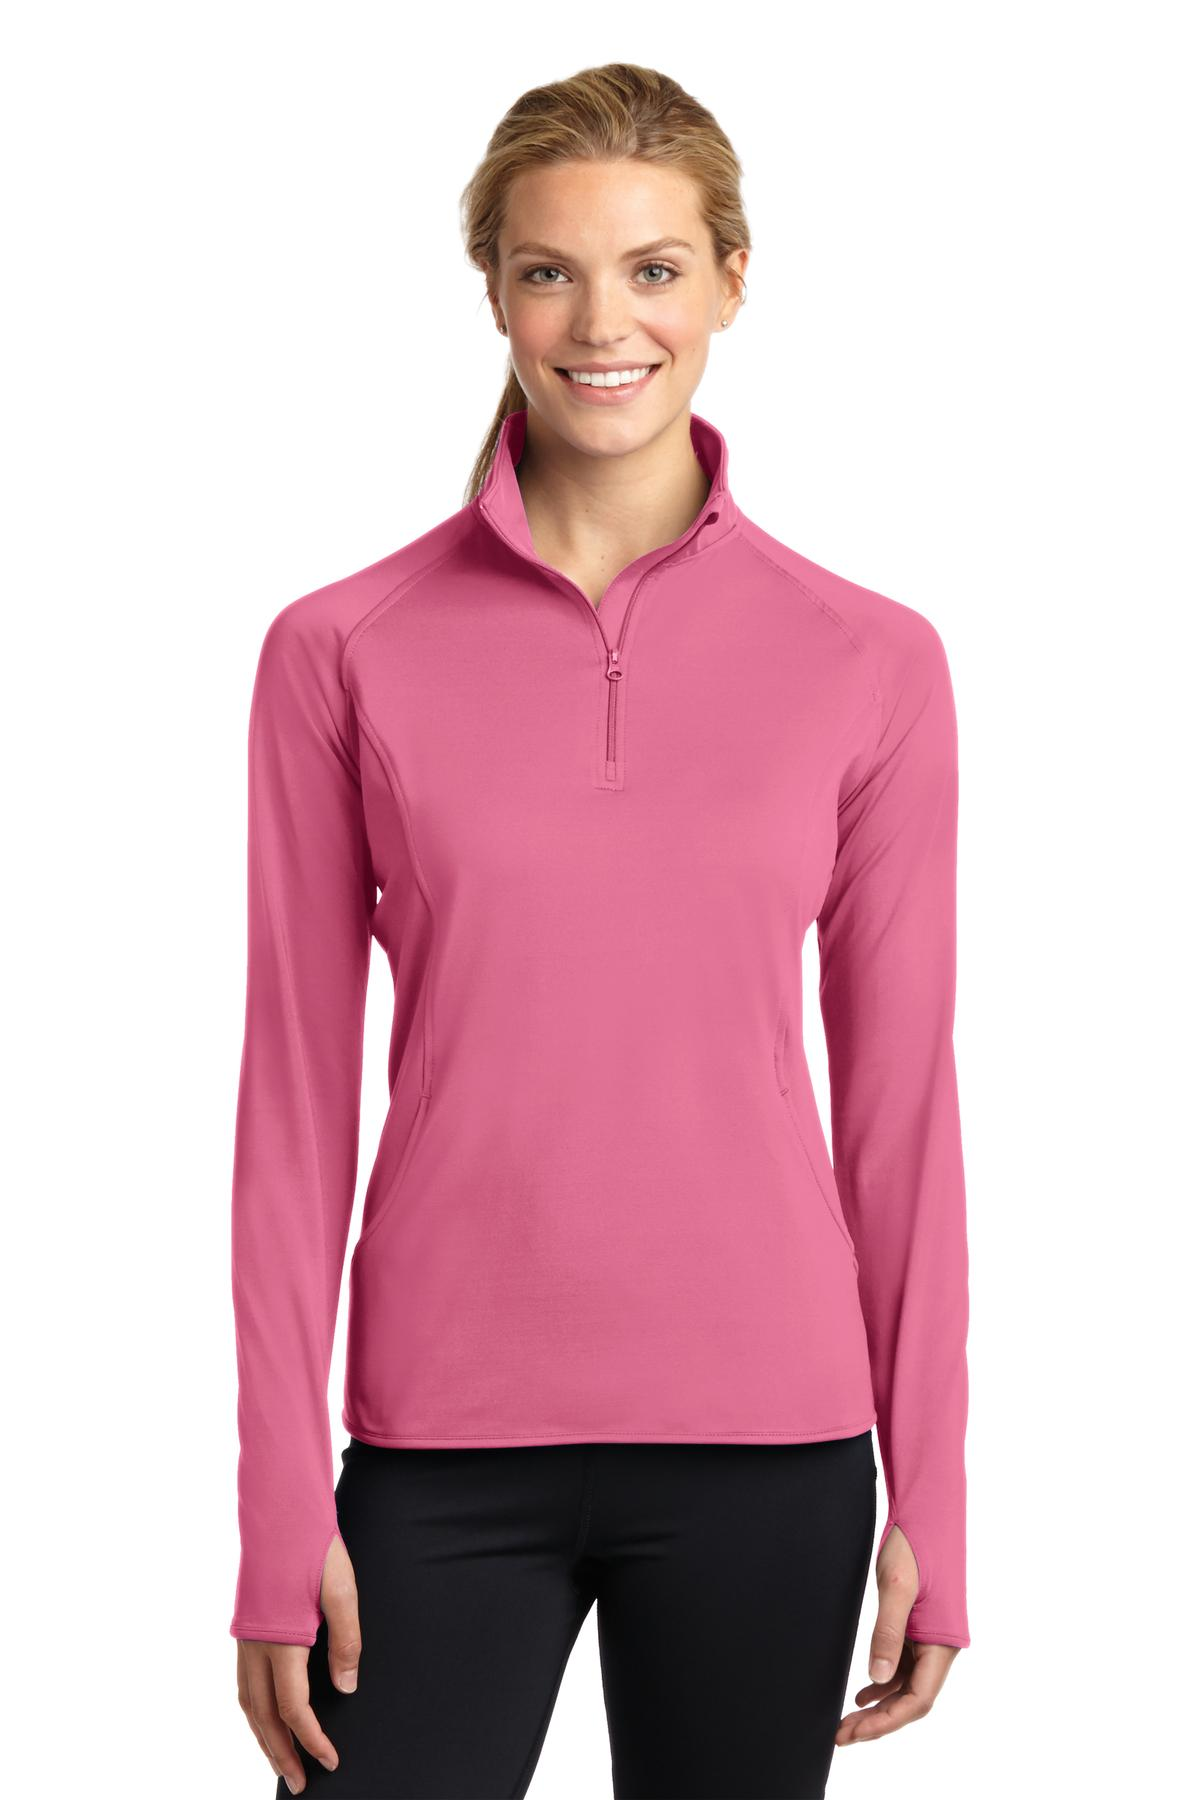 Sport-Tek ®  Ladies Sport-Wick ®  Stretch 1/2-Zip Pullover. LST850 - Dusty Rose